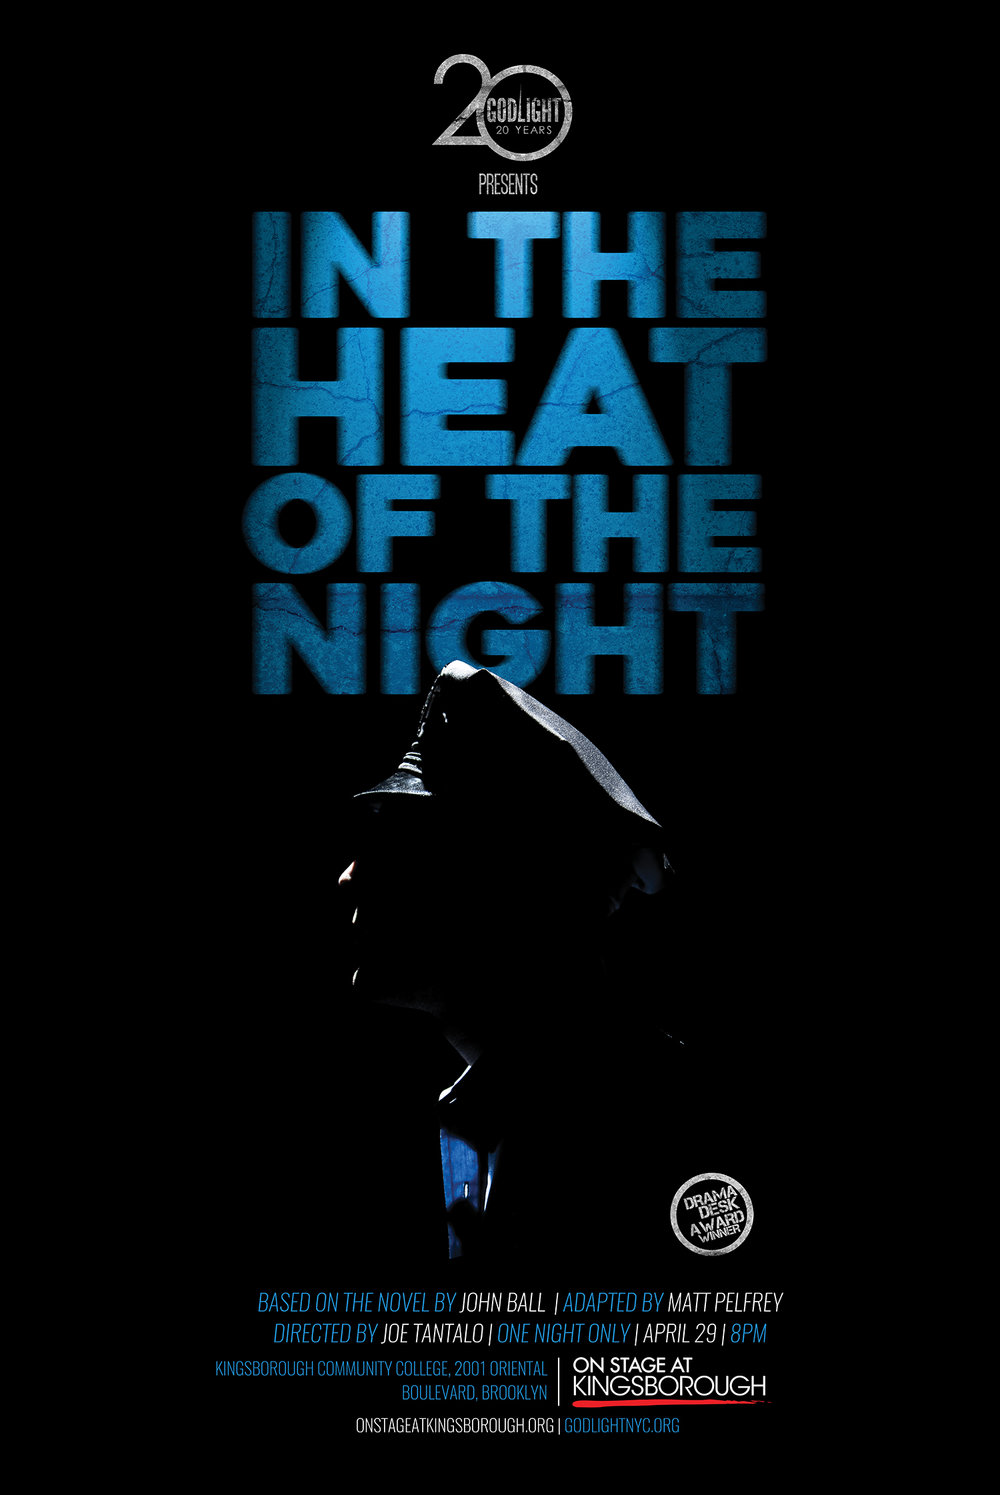 intheheatofthenight_poster24x36_FINAL_web copy.jpg